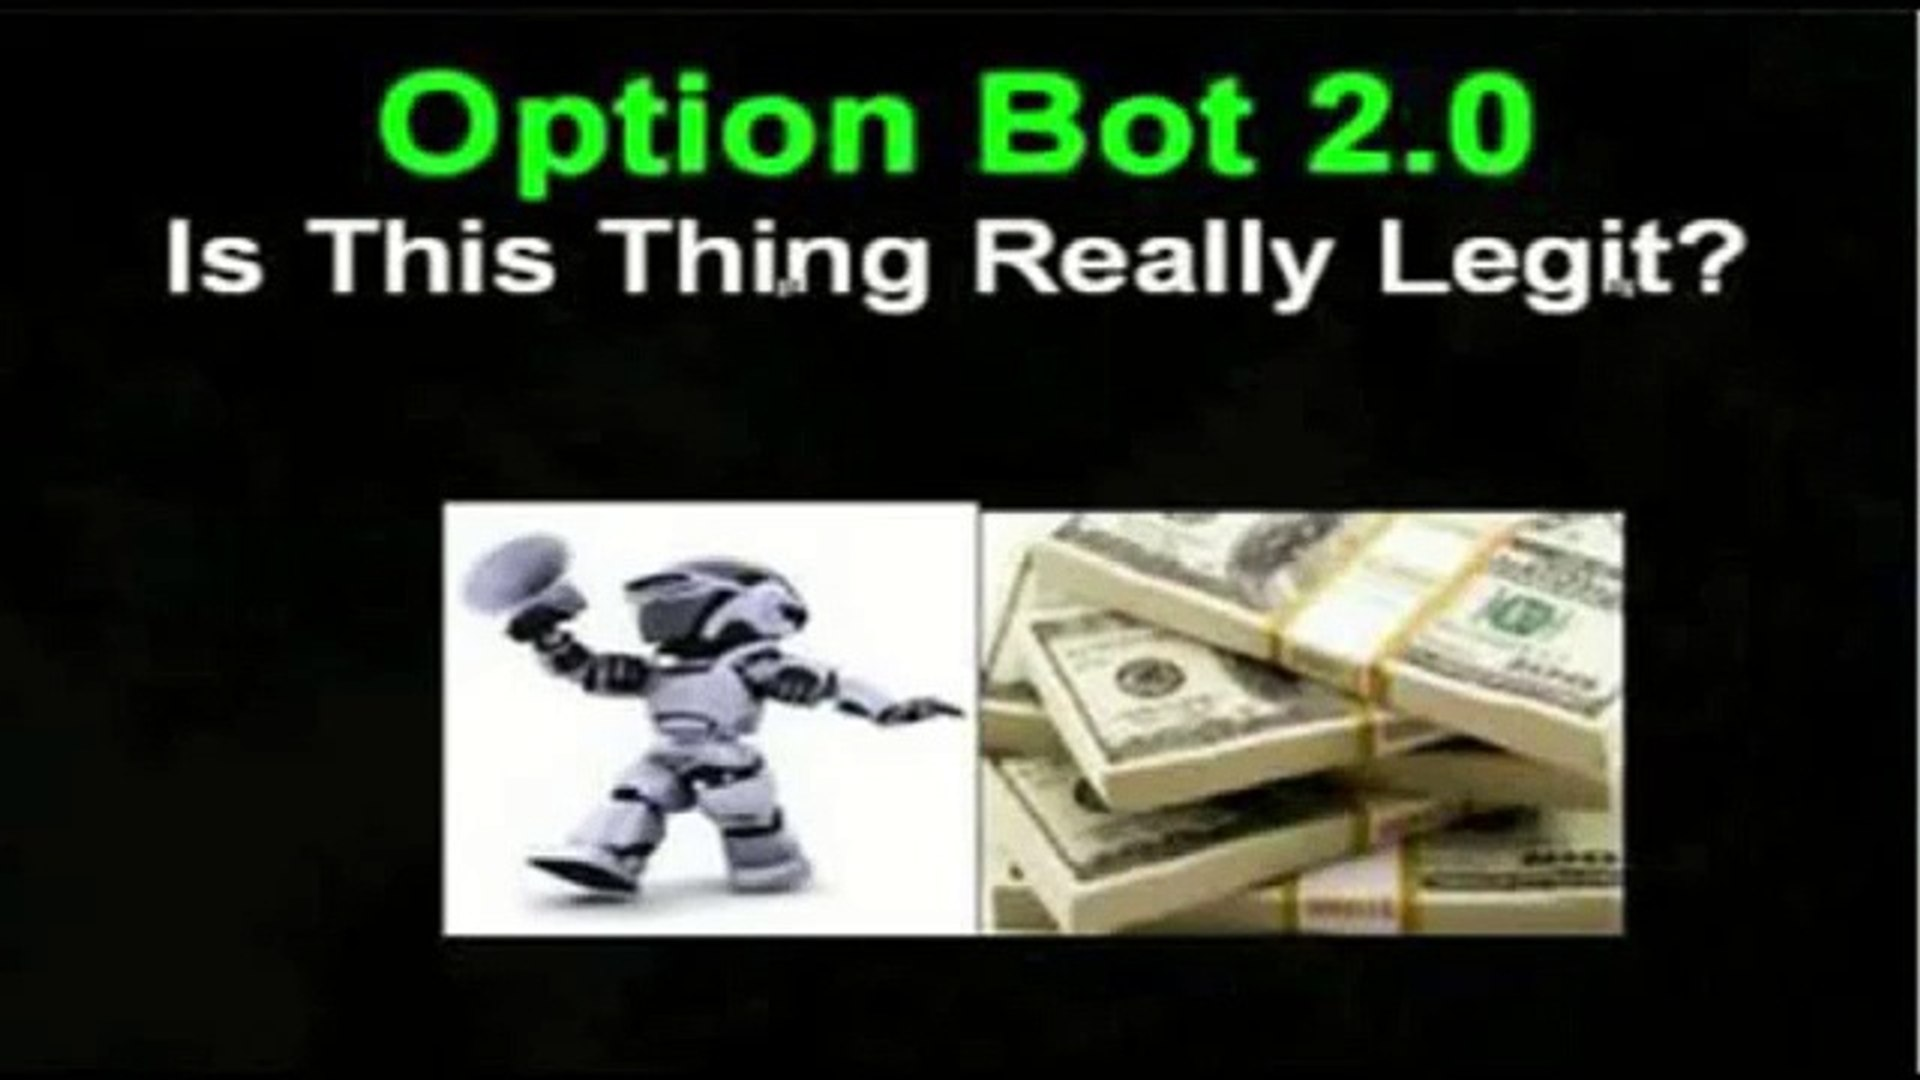 Option Bot 2 0 Review   Is Option Bot 2 0 a Scam